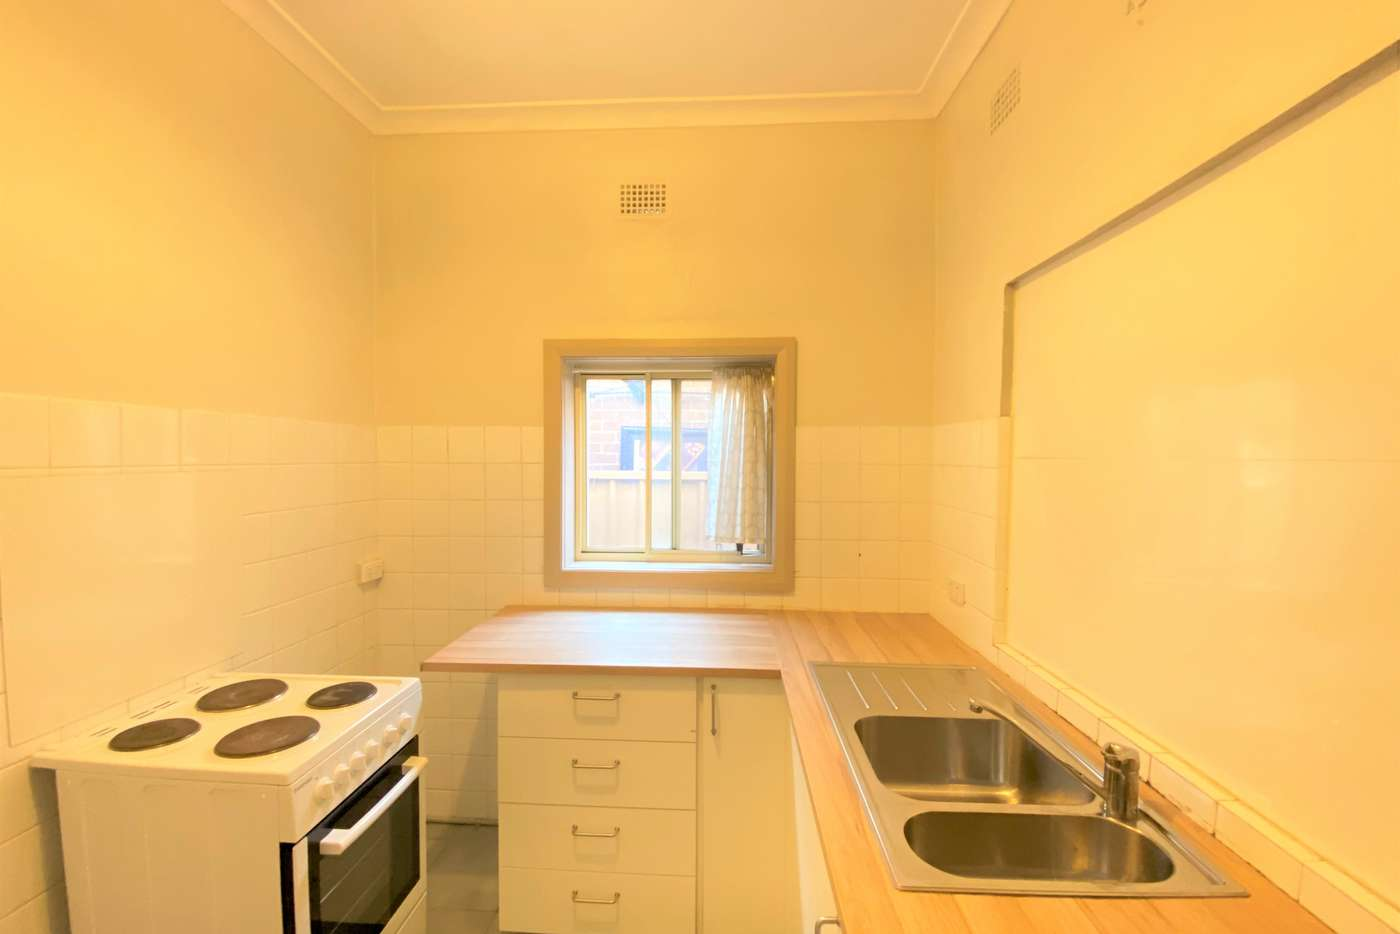 Main view of Homely apartment listing, 2/137 Concord Road, North Strathfield NSW 2137